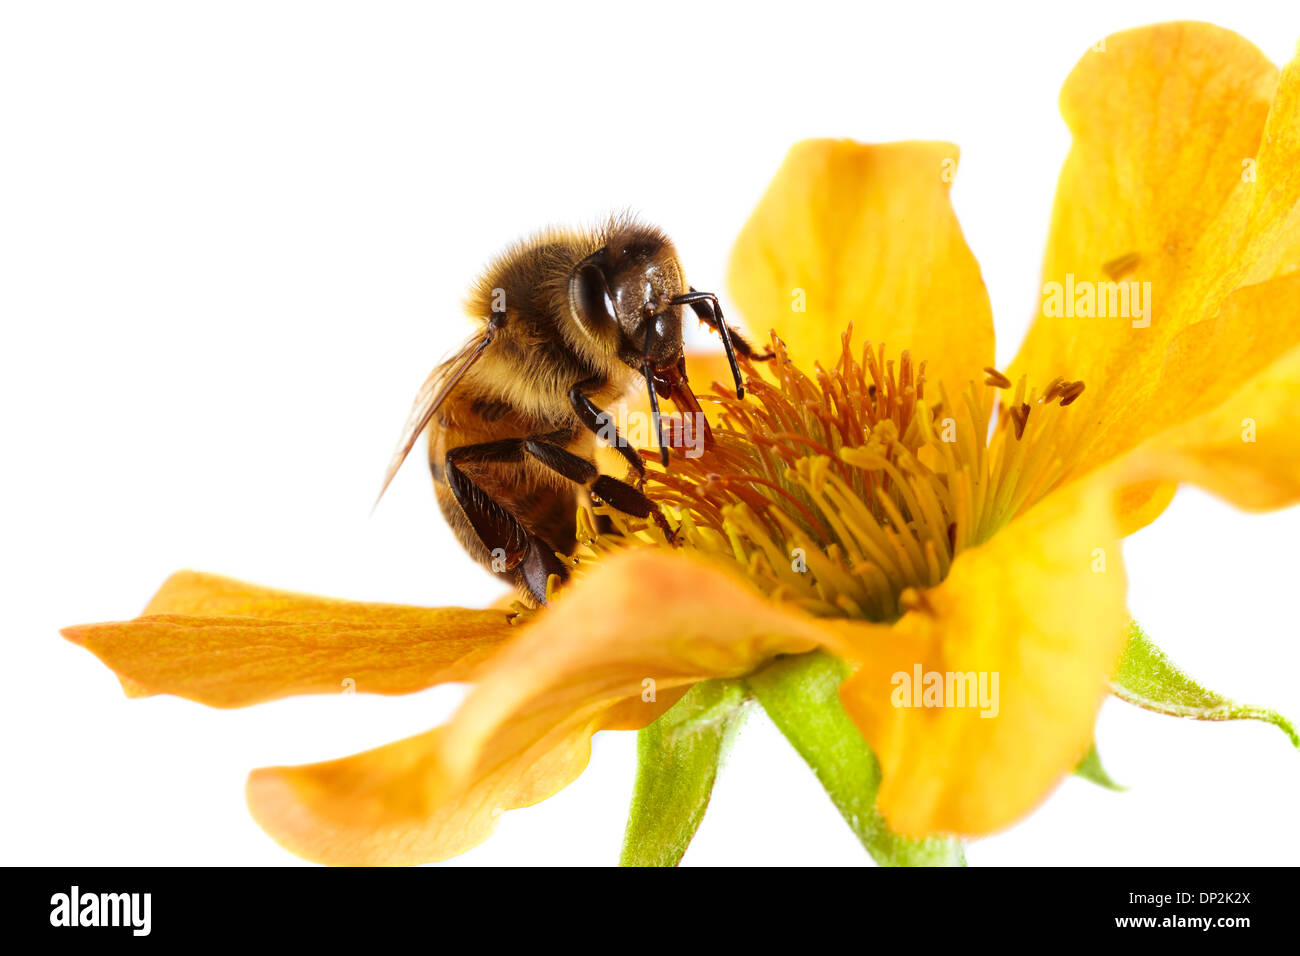 Honey bee on a flower - Stock Image